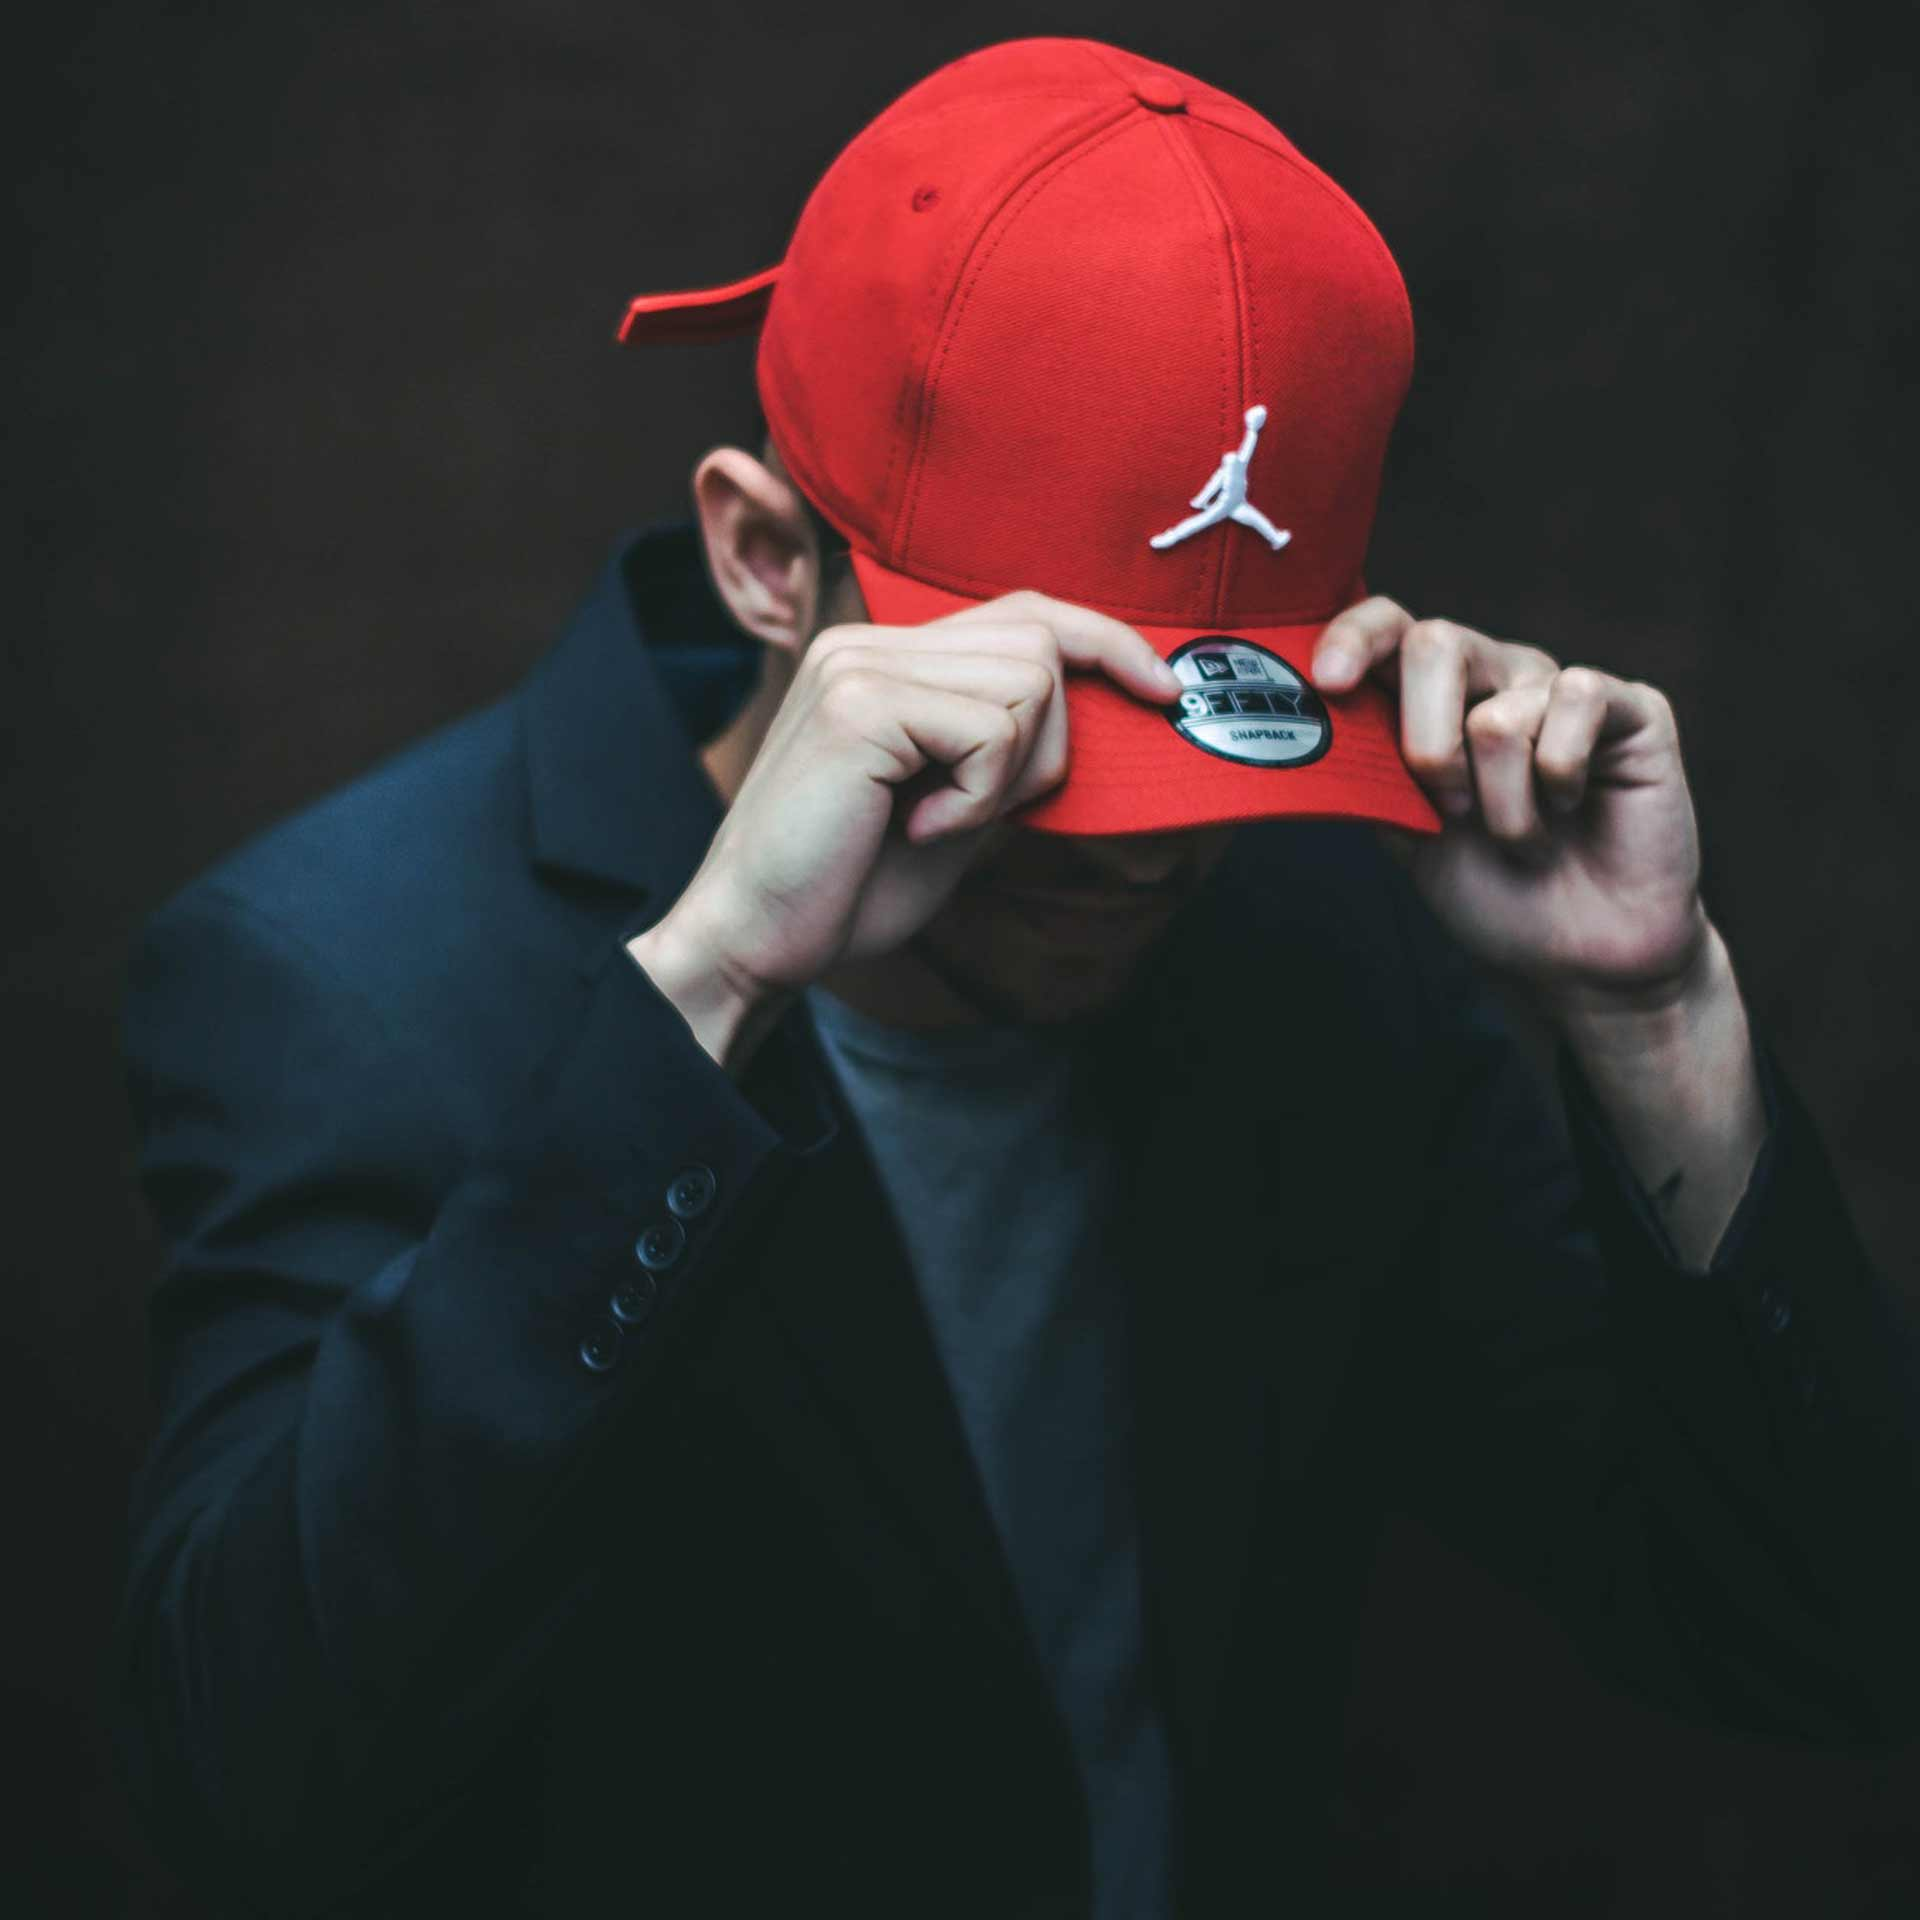 red-air-jordan-baseball-cap-3452649